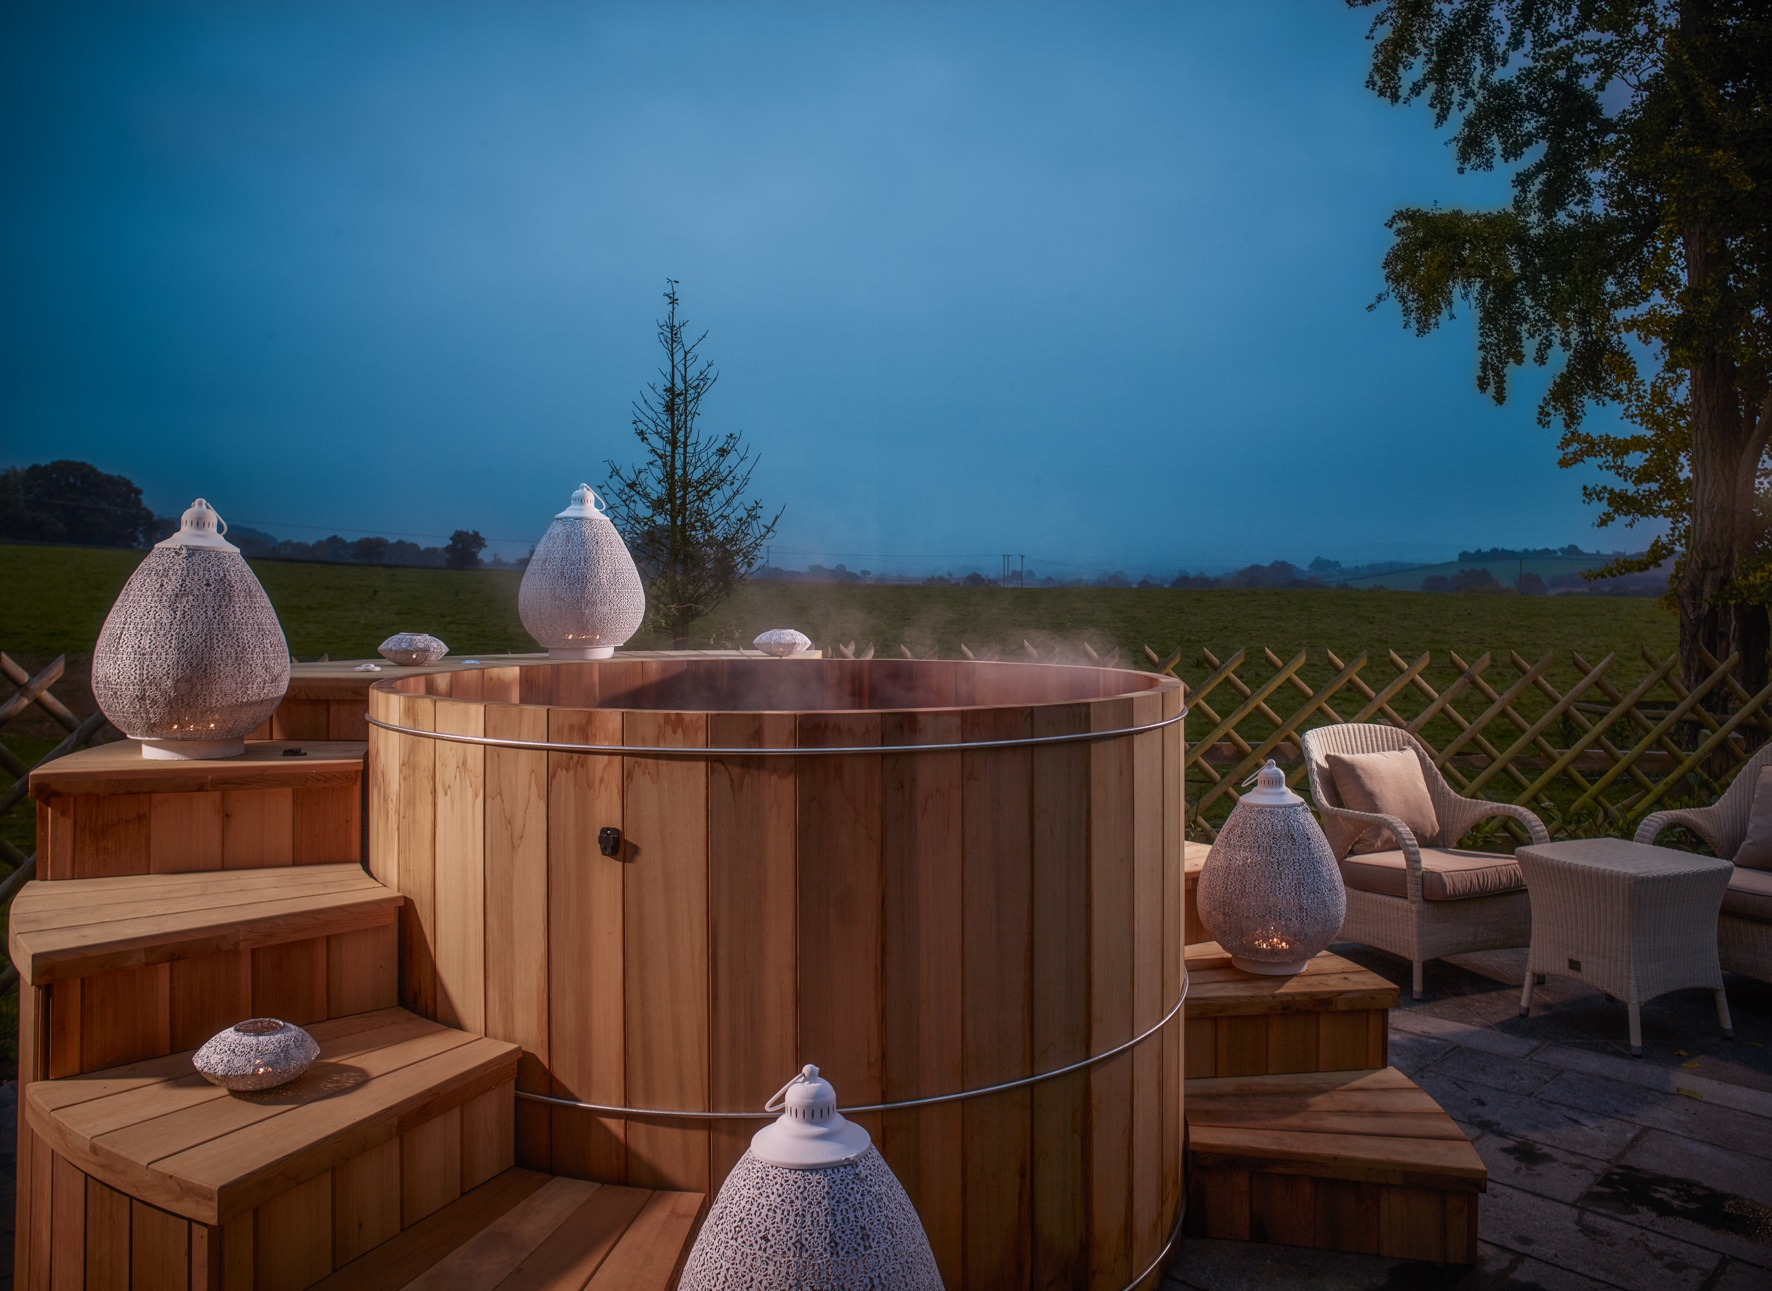 Hot-Tub-at-night-1-SPAshell-Fishmore-Hall-Copy-Copy Time To Unwind | Wellness Breaks